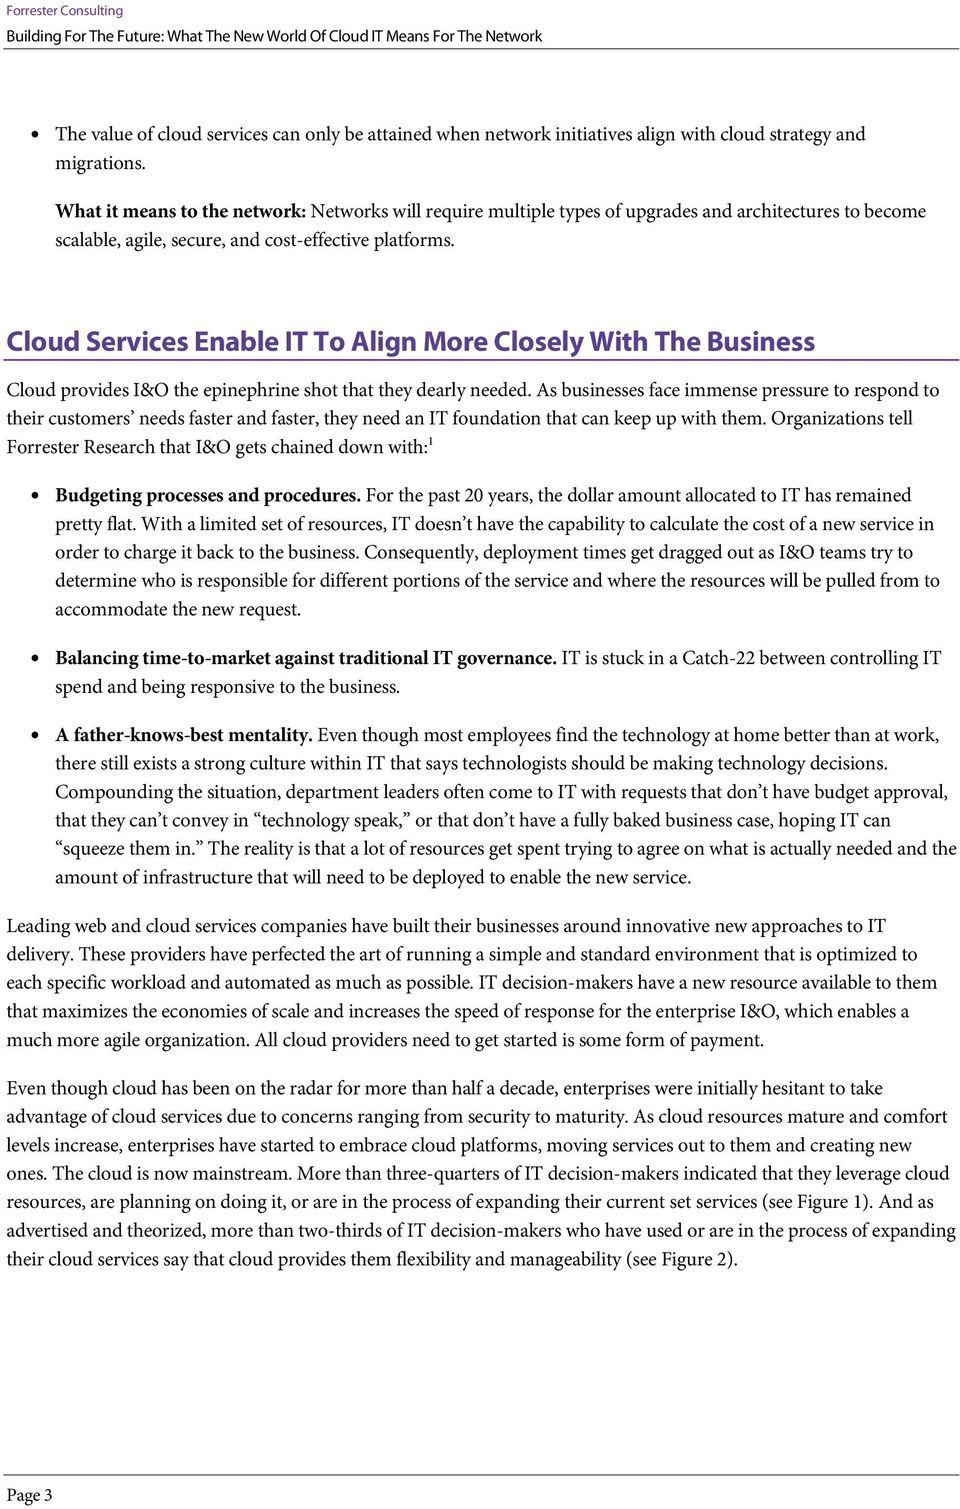 Cloud Services Enable IT To Align More Closely With The Business Cloud provides I&O the epinephrine shot that they dearly needed.